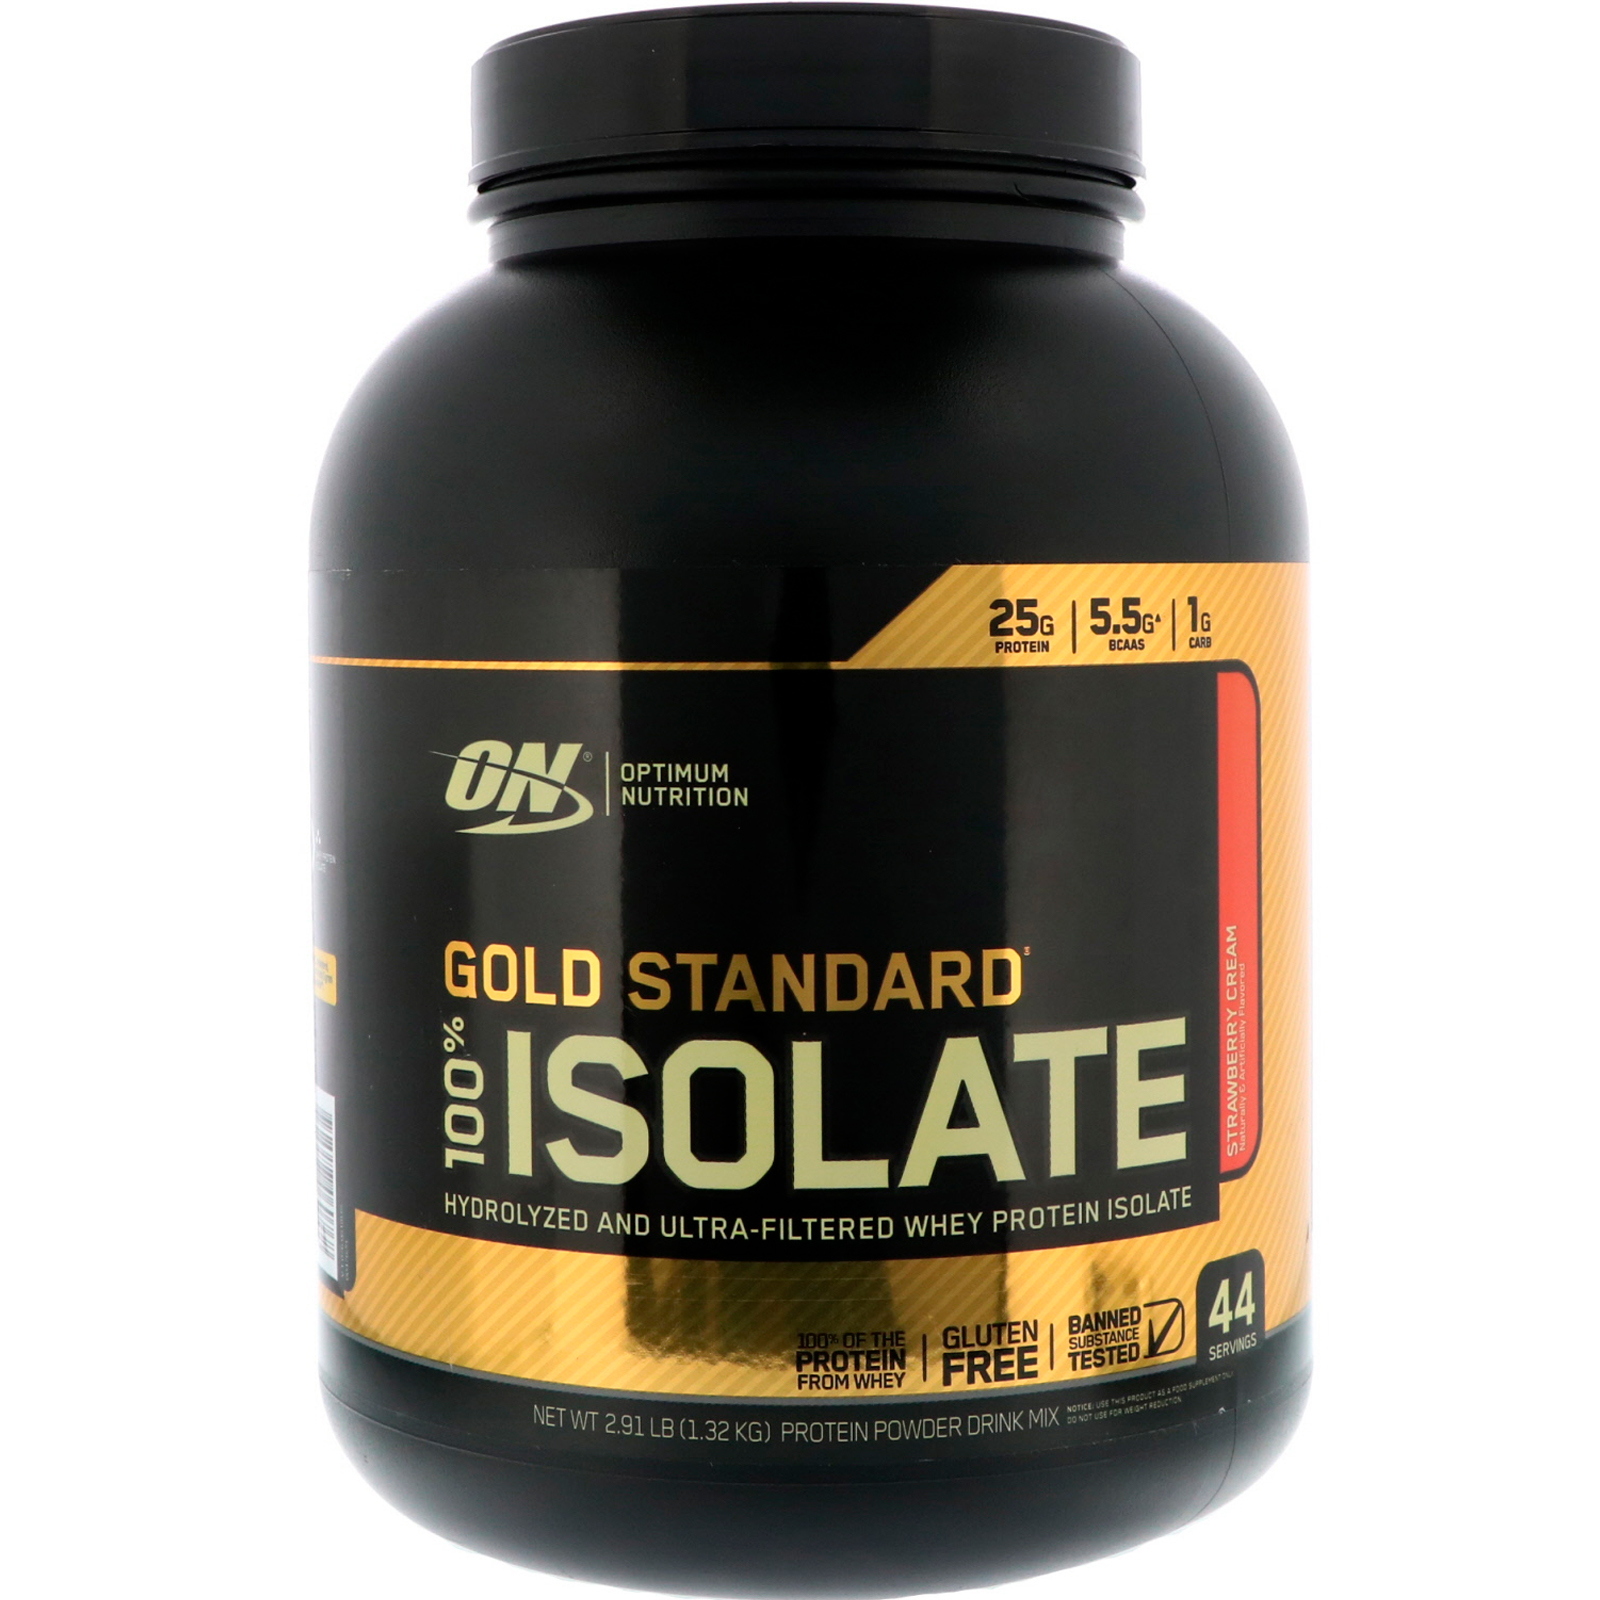 Alert Gold Standard 100% Isolate Strawberry Cream 1 Lb Health & Beauty